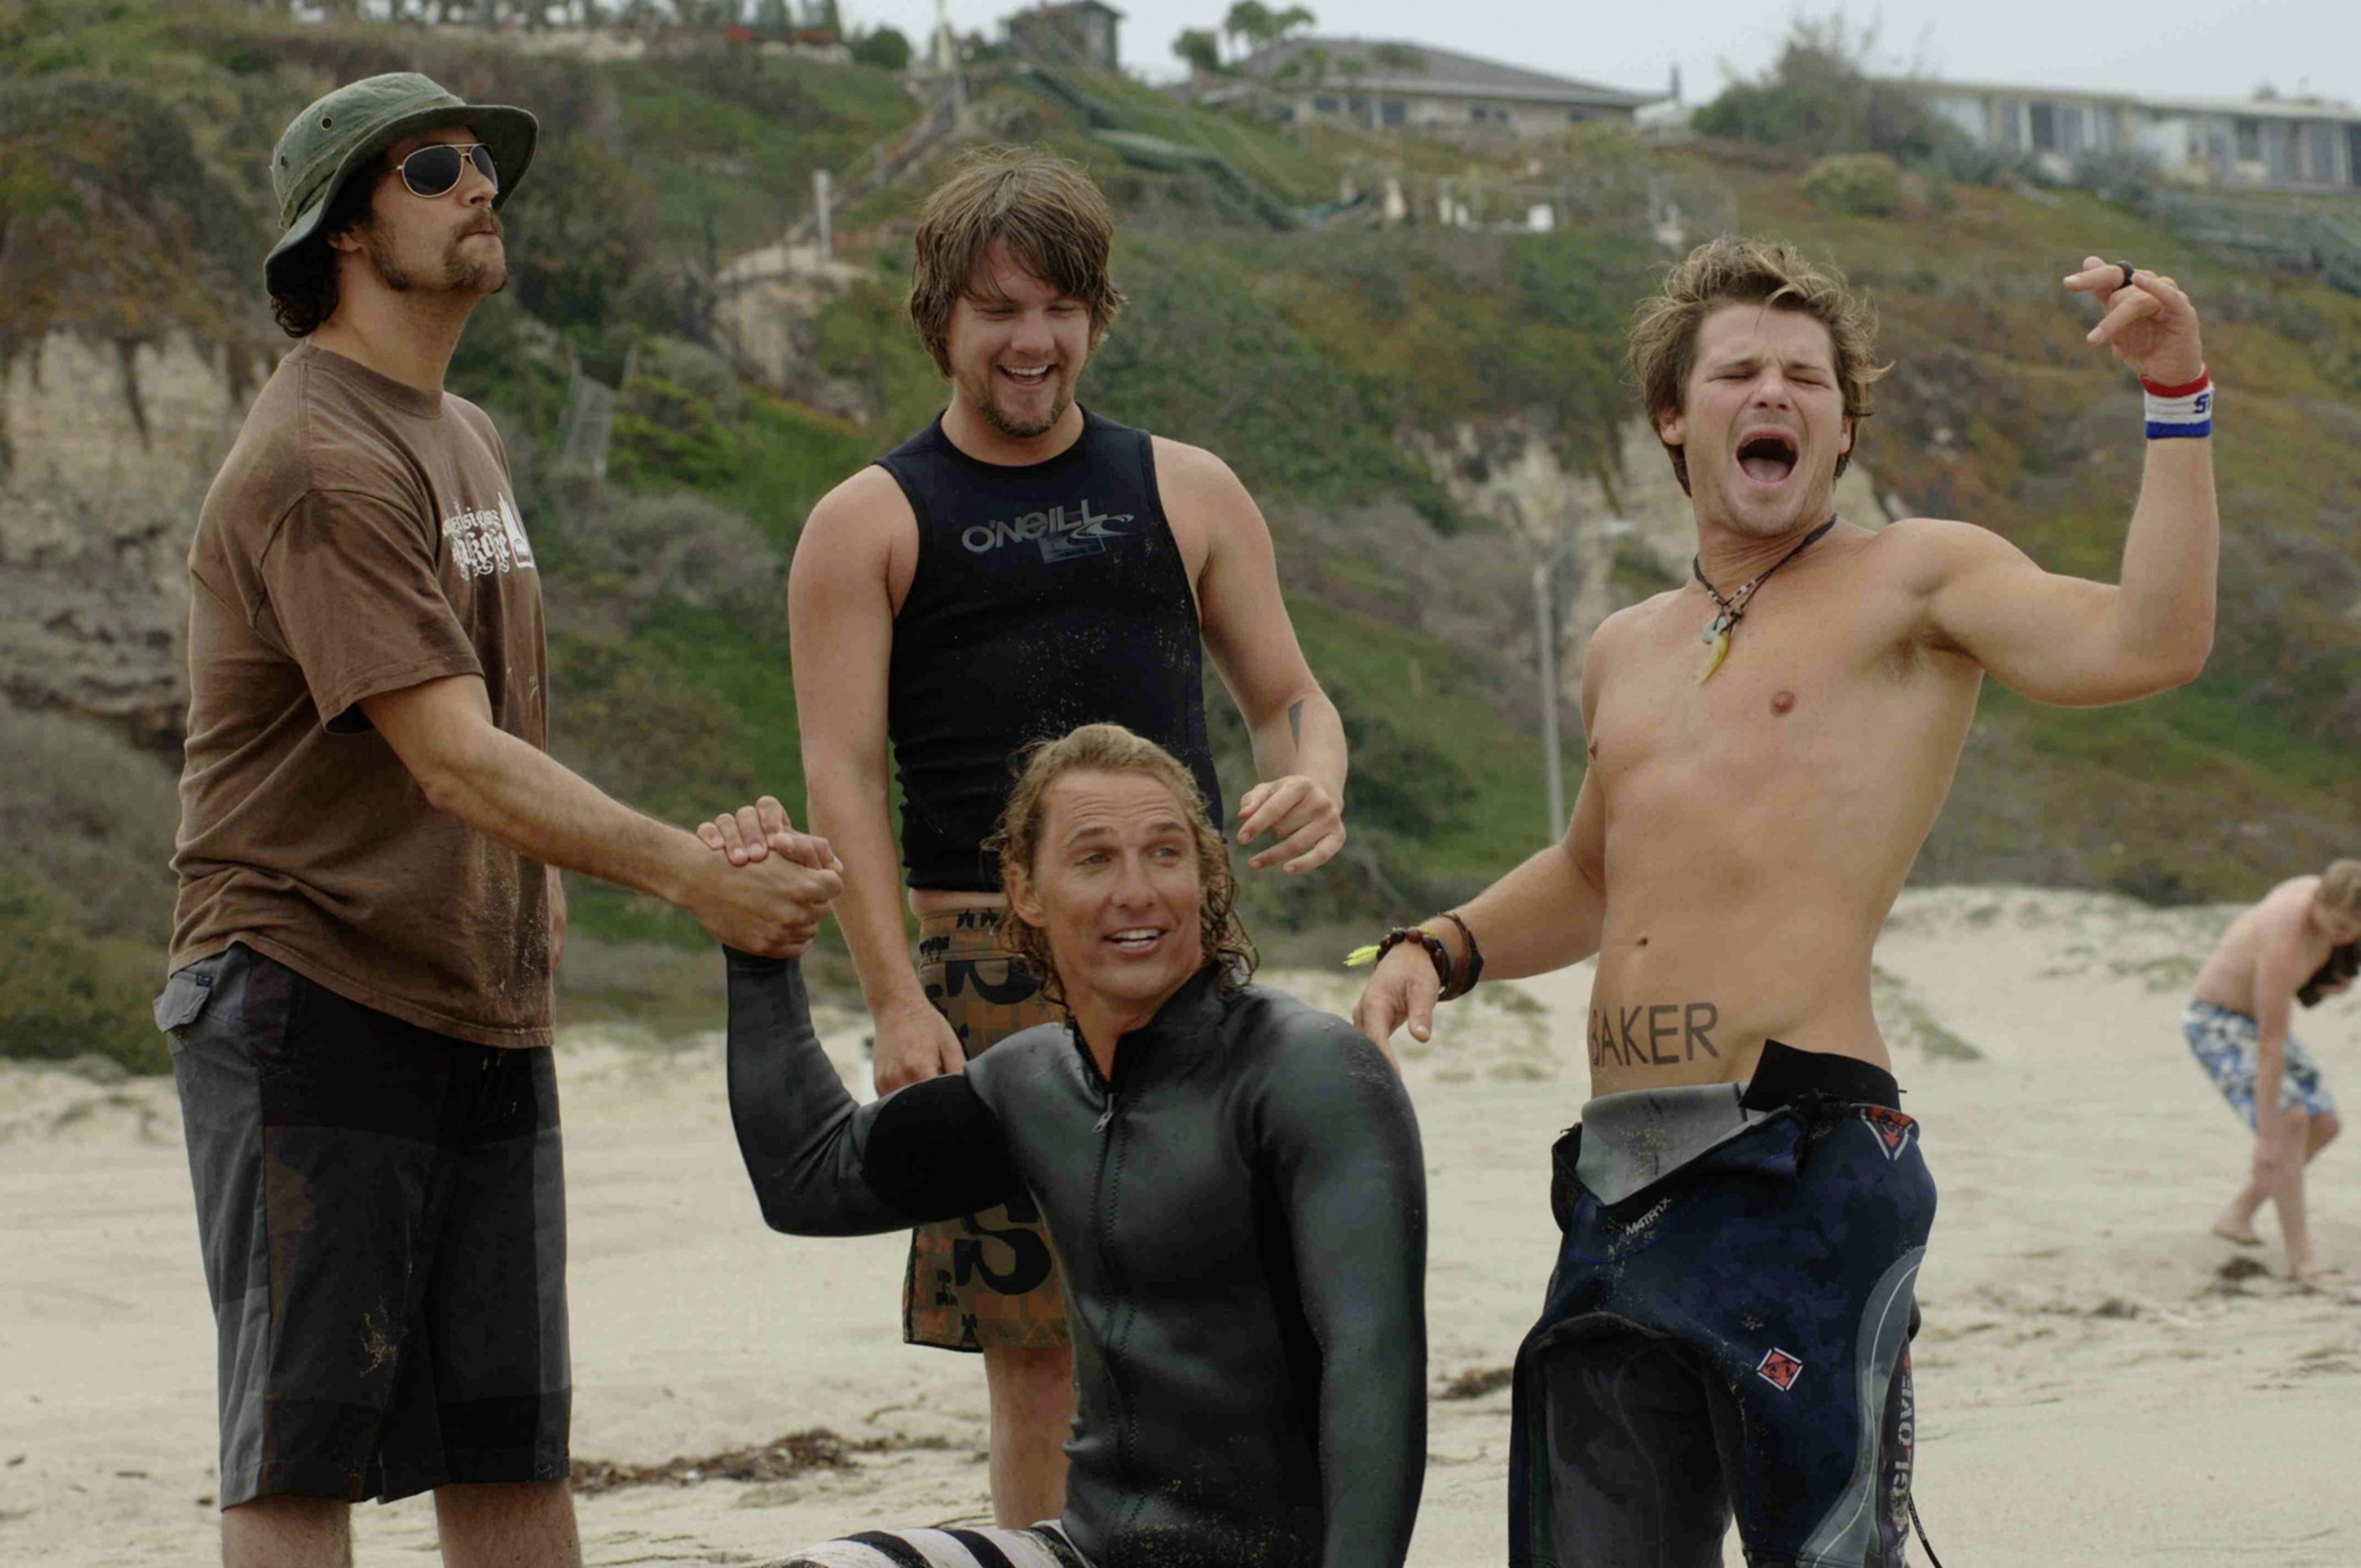 surfer dude Surfer, dude 2008 | 85 min steve addington (matthew mcconaughey) is a professional surfer and beach bum who lives to ride the waves.